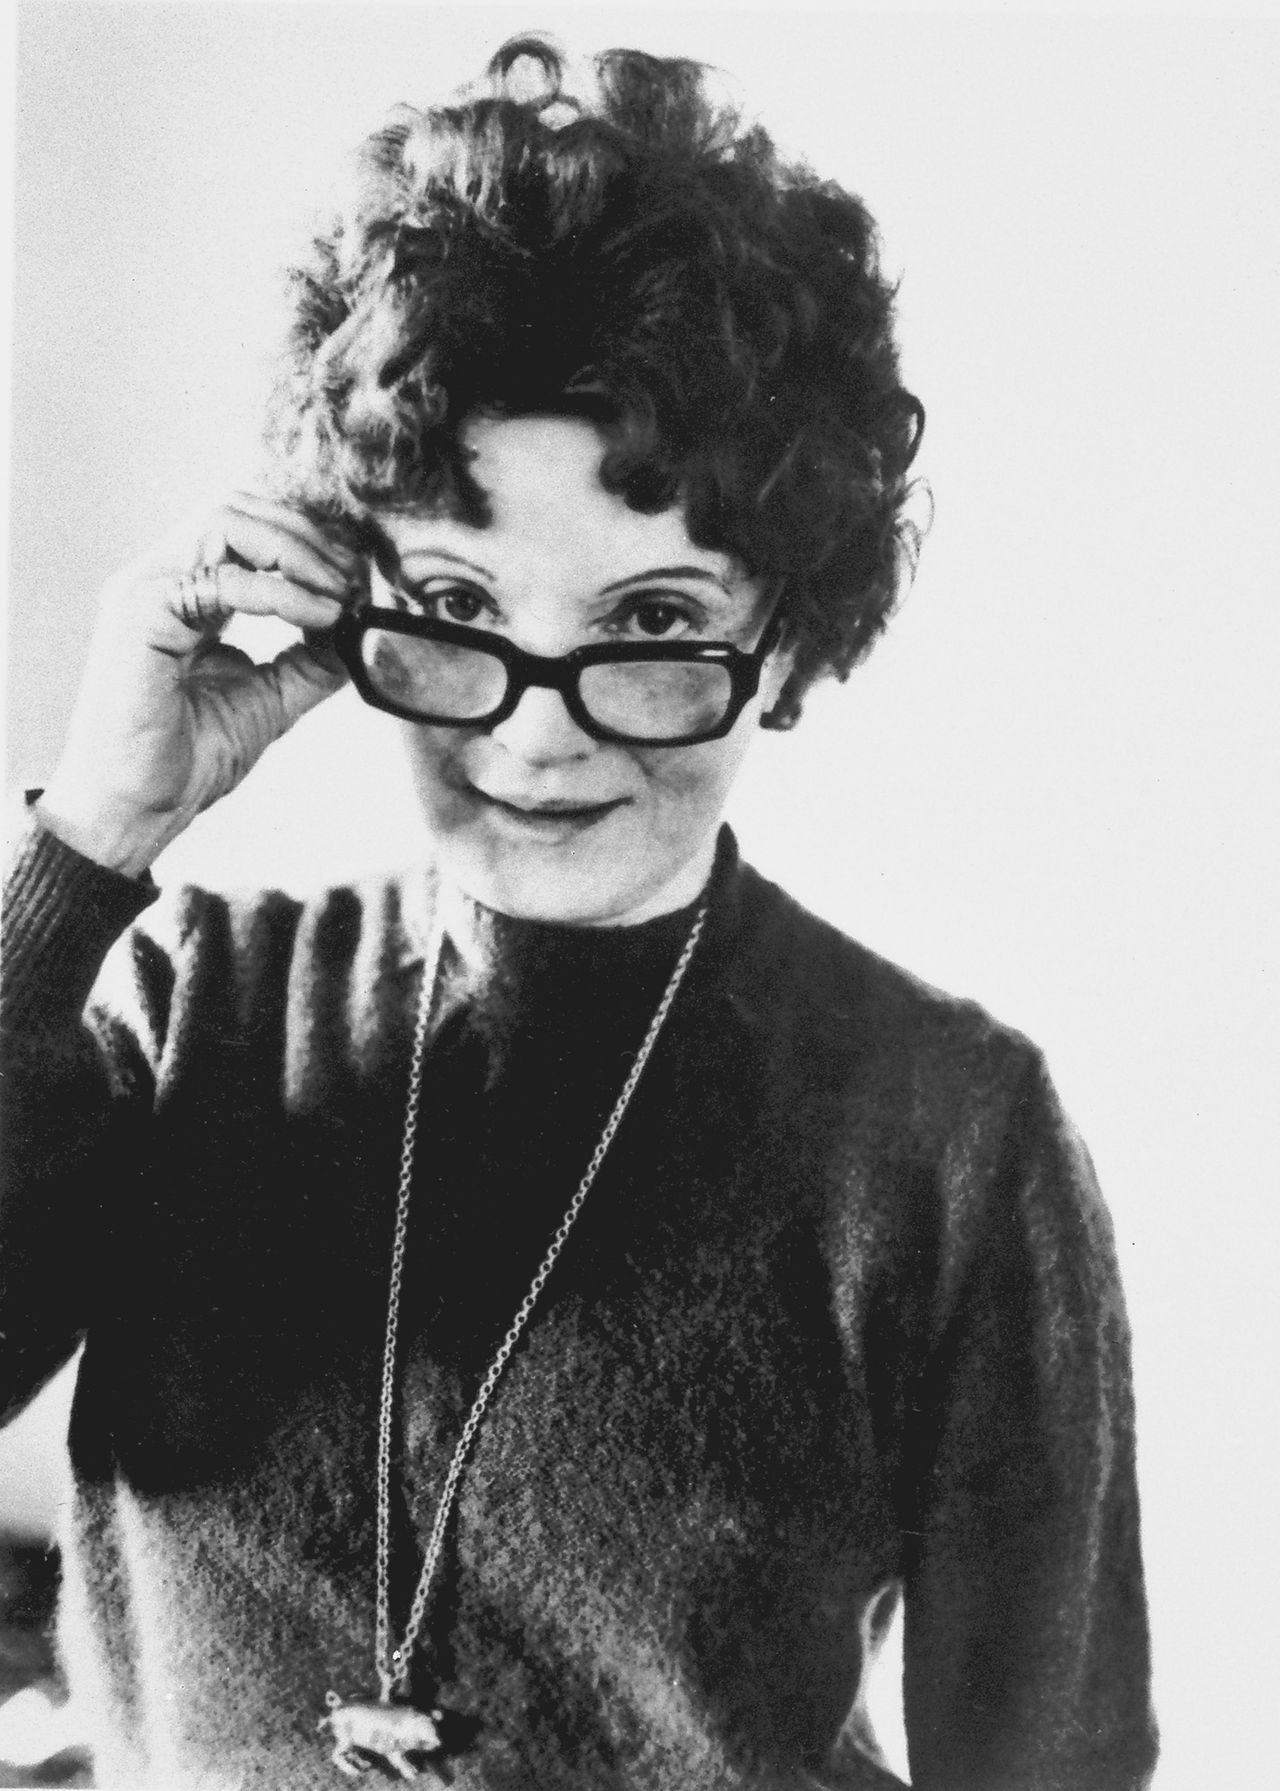 Schrijfster Muriel Spark, 'een raadsel gewikkeld in een mysterie, gekleed in Dior', in 1985 Foto AP *** FILE *** This is a 1985 file photo of author Dame Muriel Spark. Spark, whose spare and humorous novels made her one of the most admired British writers of the post World War II years, has died in Tuscany, Italian officials said Saturday April 15, 2006. She was 88. (AP Photo/Jerry Bauer)